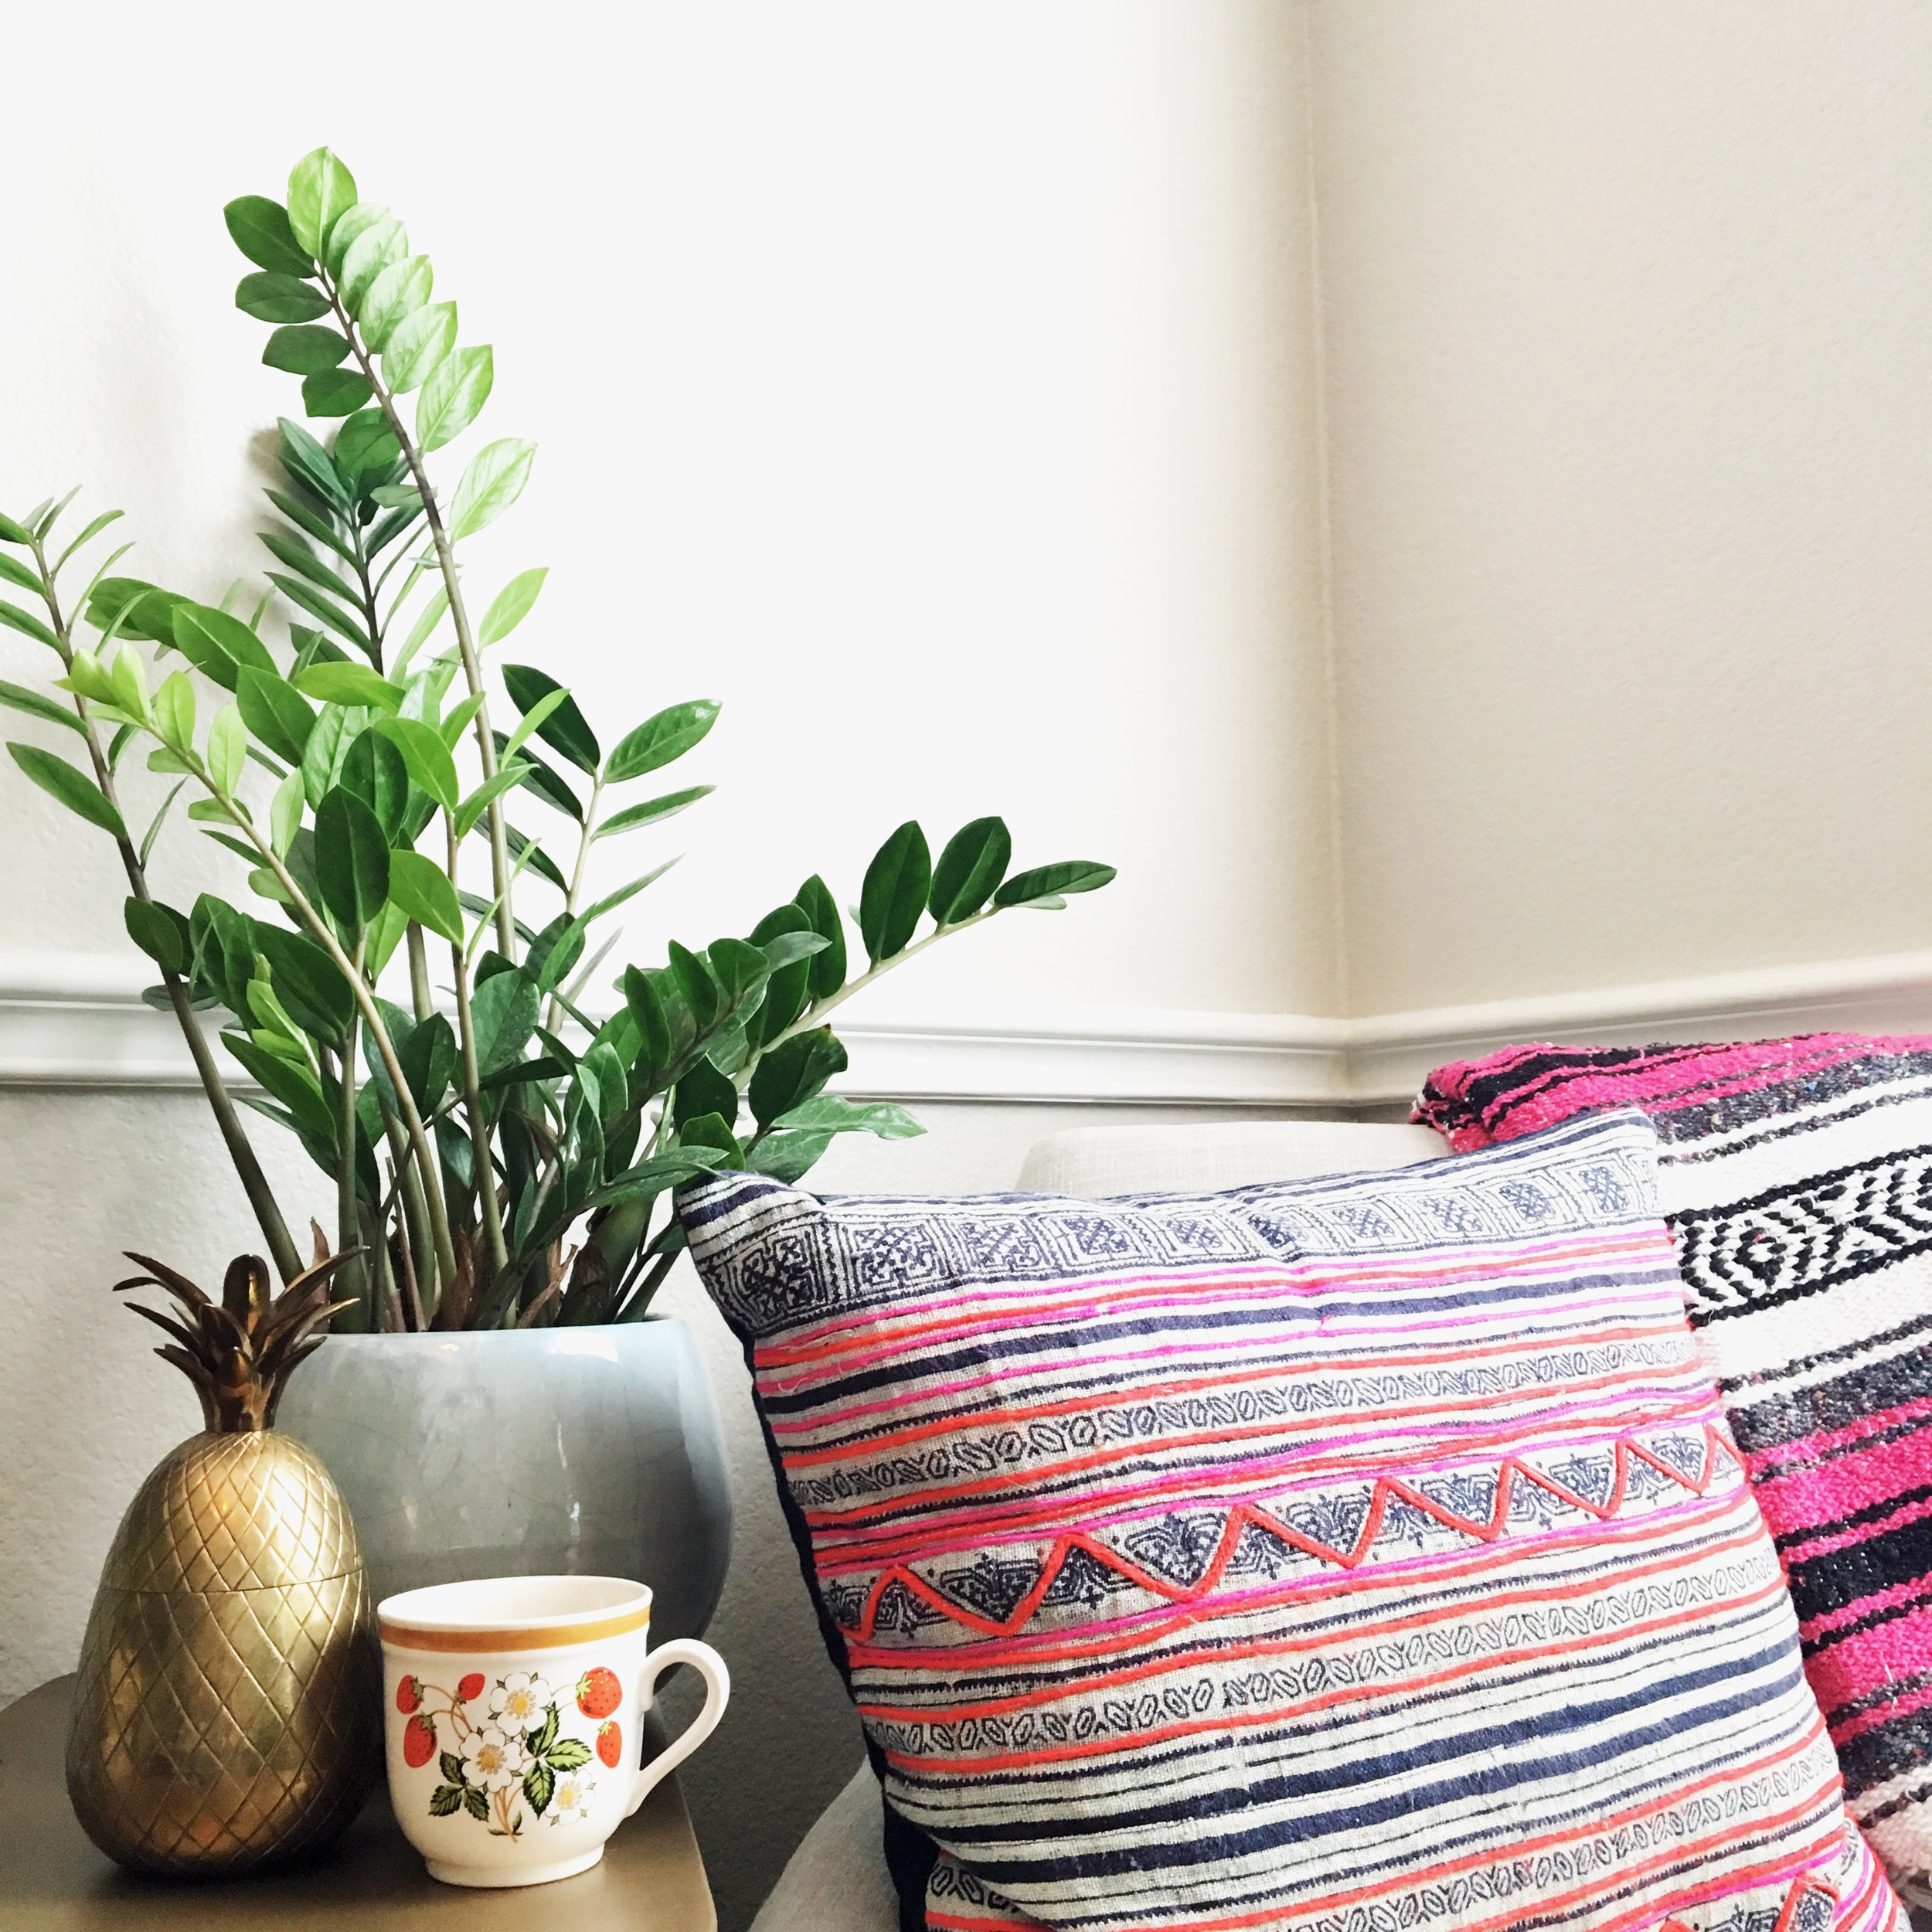 The ZZ plant is one of the best plants to keep alive indoors.